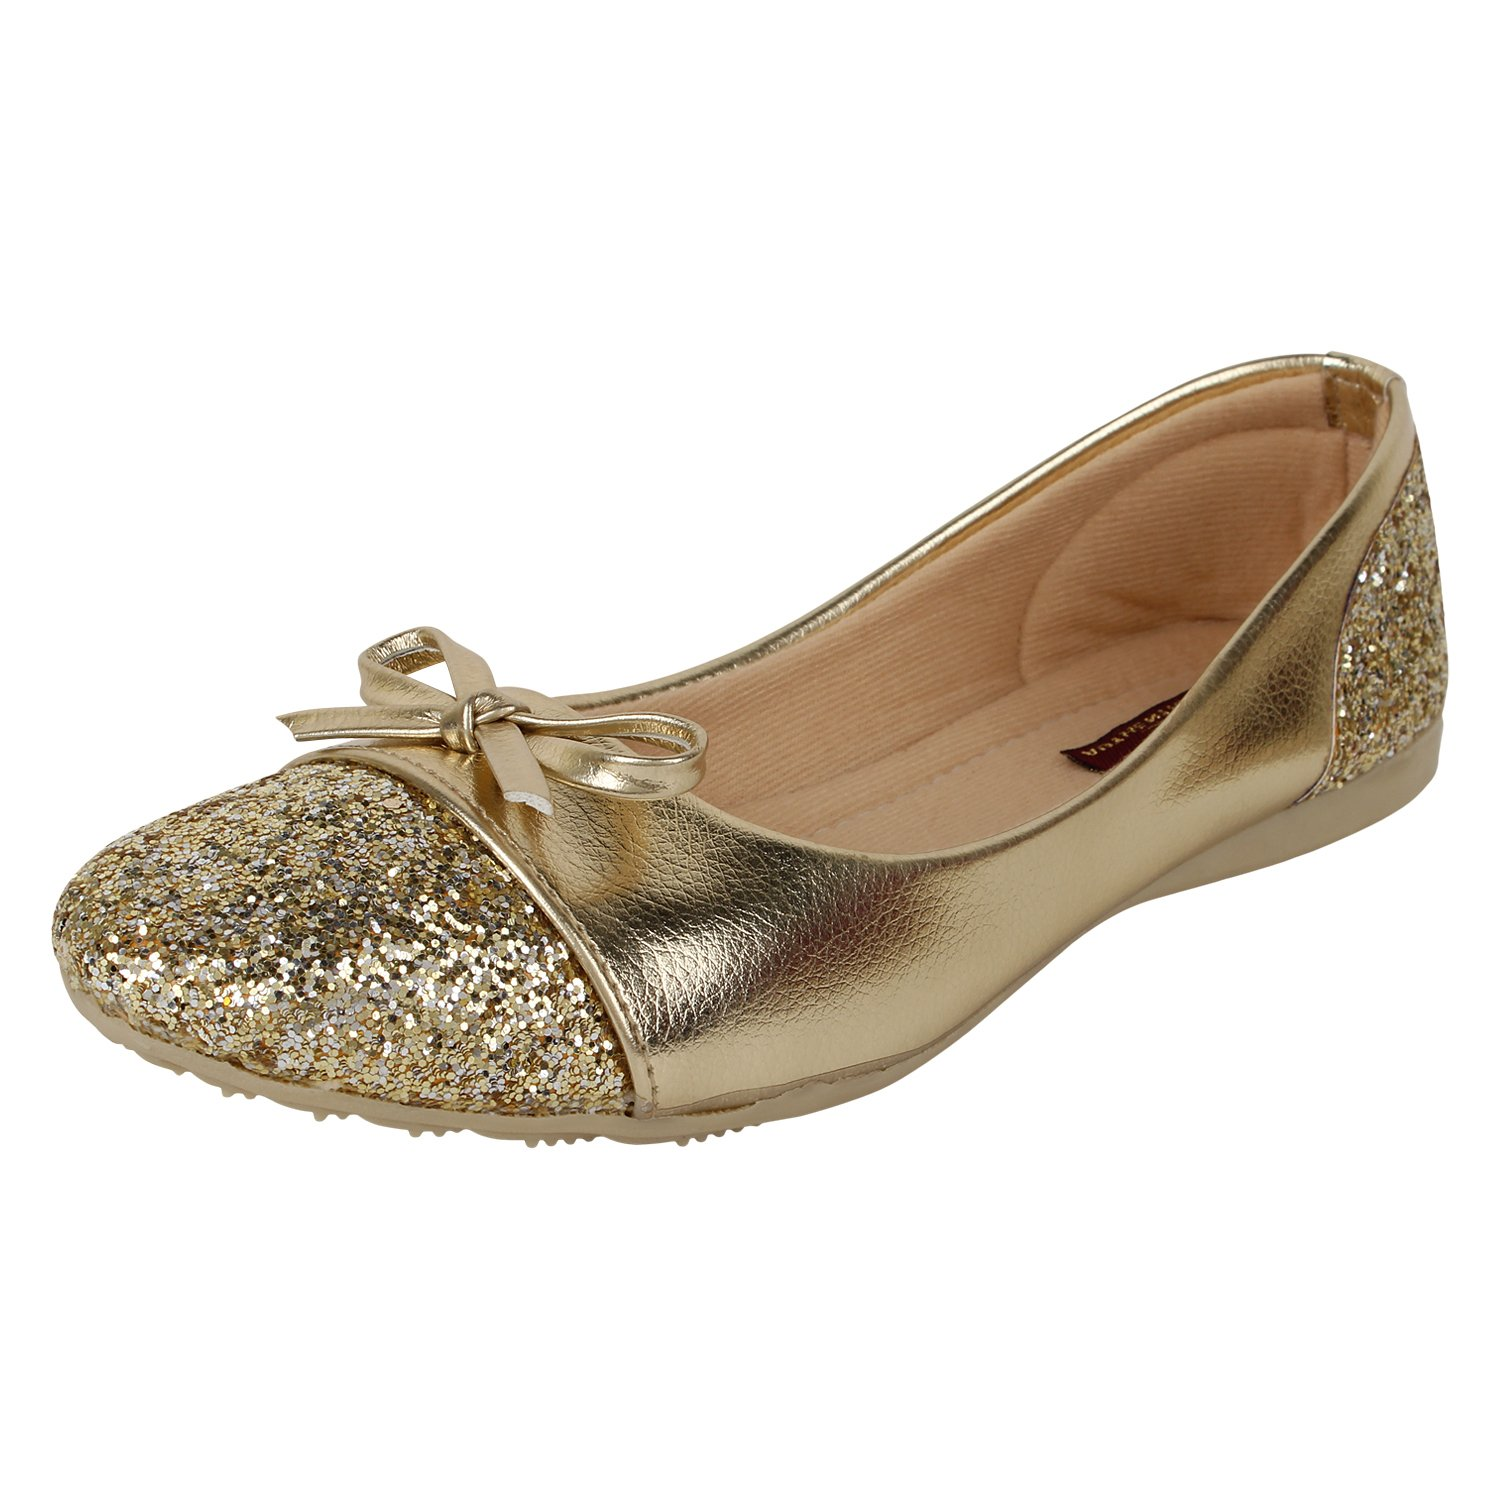 639e8f8964a9 Ballet Flats  Buy Women s Ballet Flats Online at Best Prices in ...